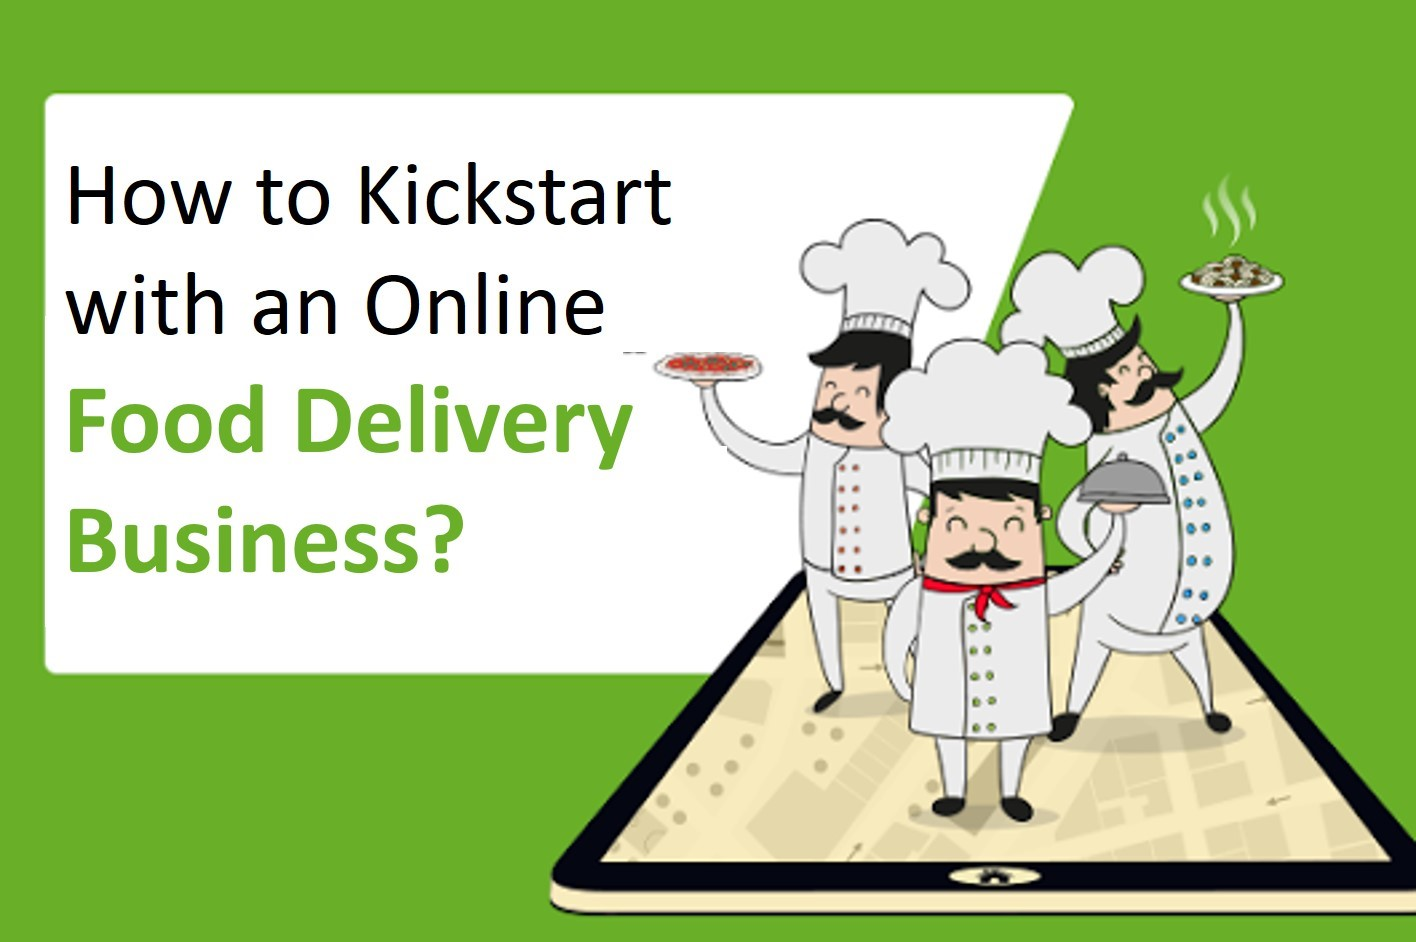 Kickstart with an Online Food Delivery Business; graphic by author.